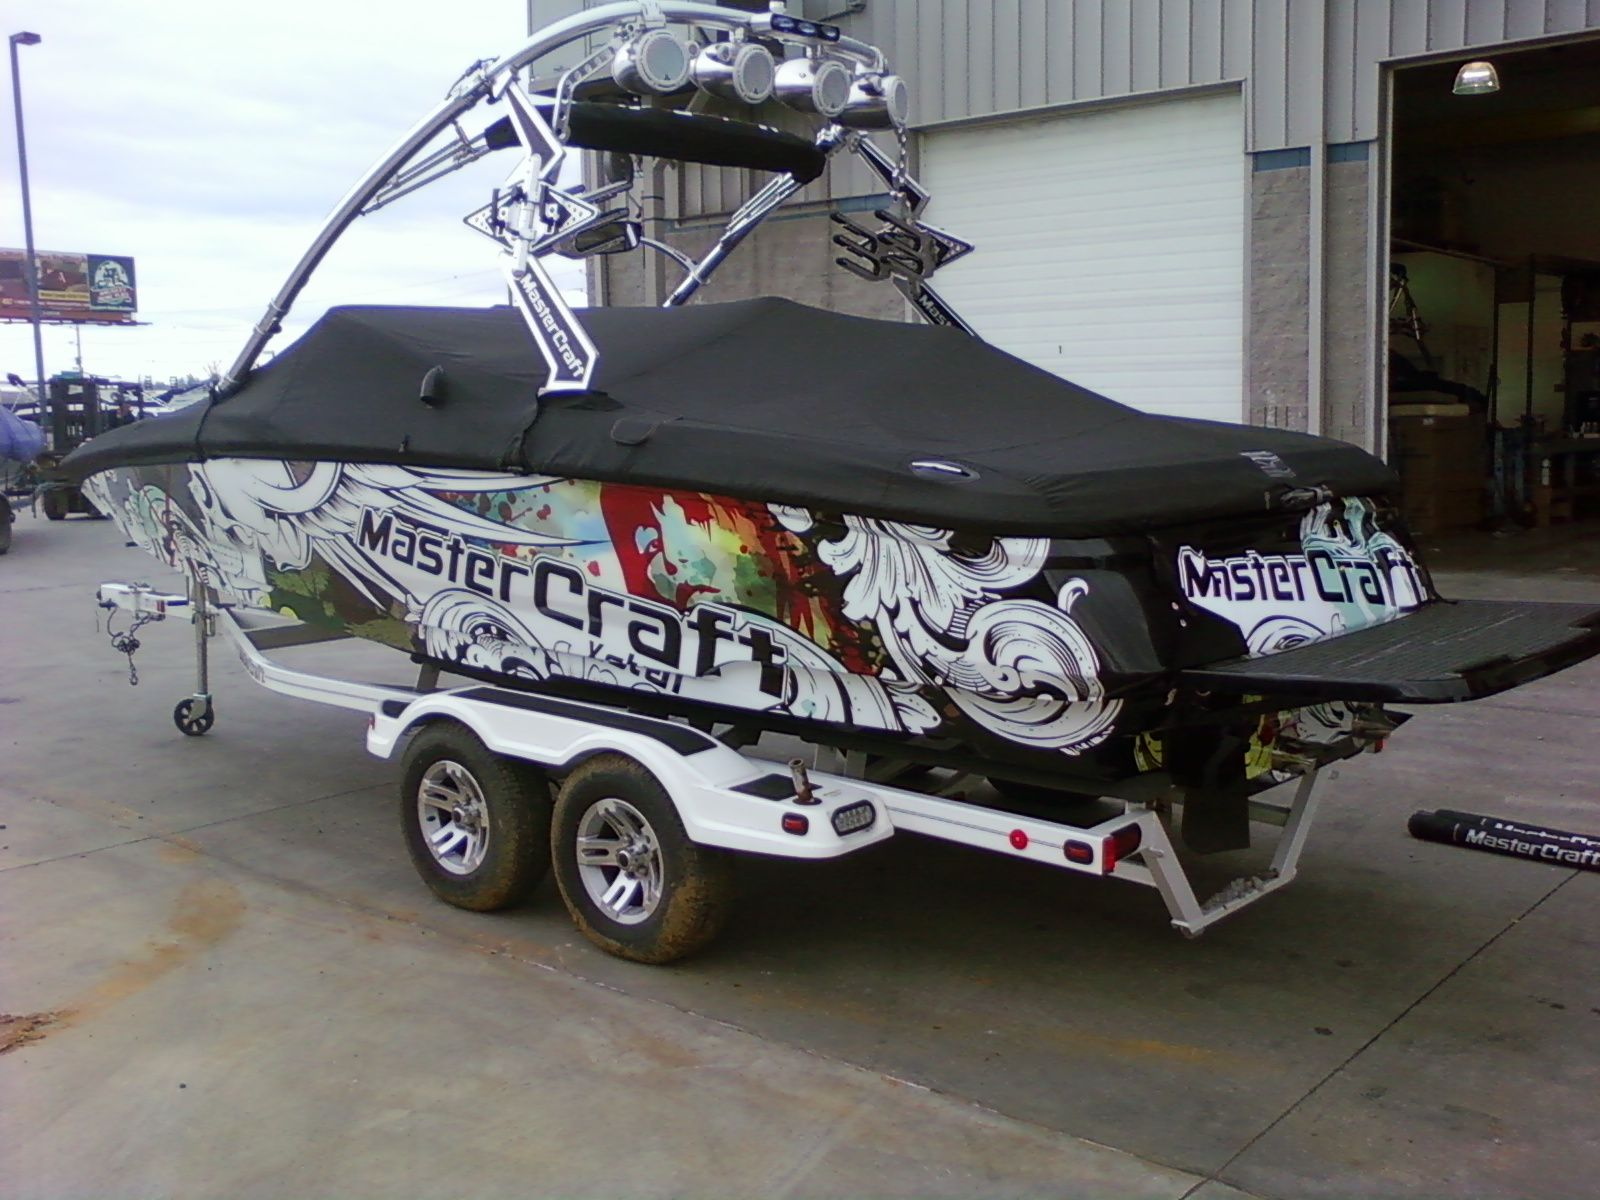 sirlin wraps mastercraft boat company boatwraps wraps sirlin wraps mastercraft boat company boatwraps wraps boatgraphics mastercraft mastercraftboats